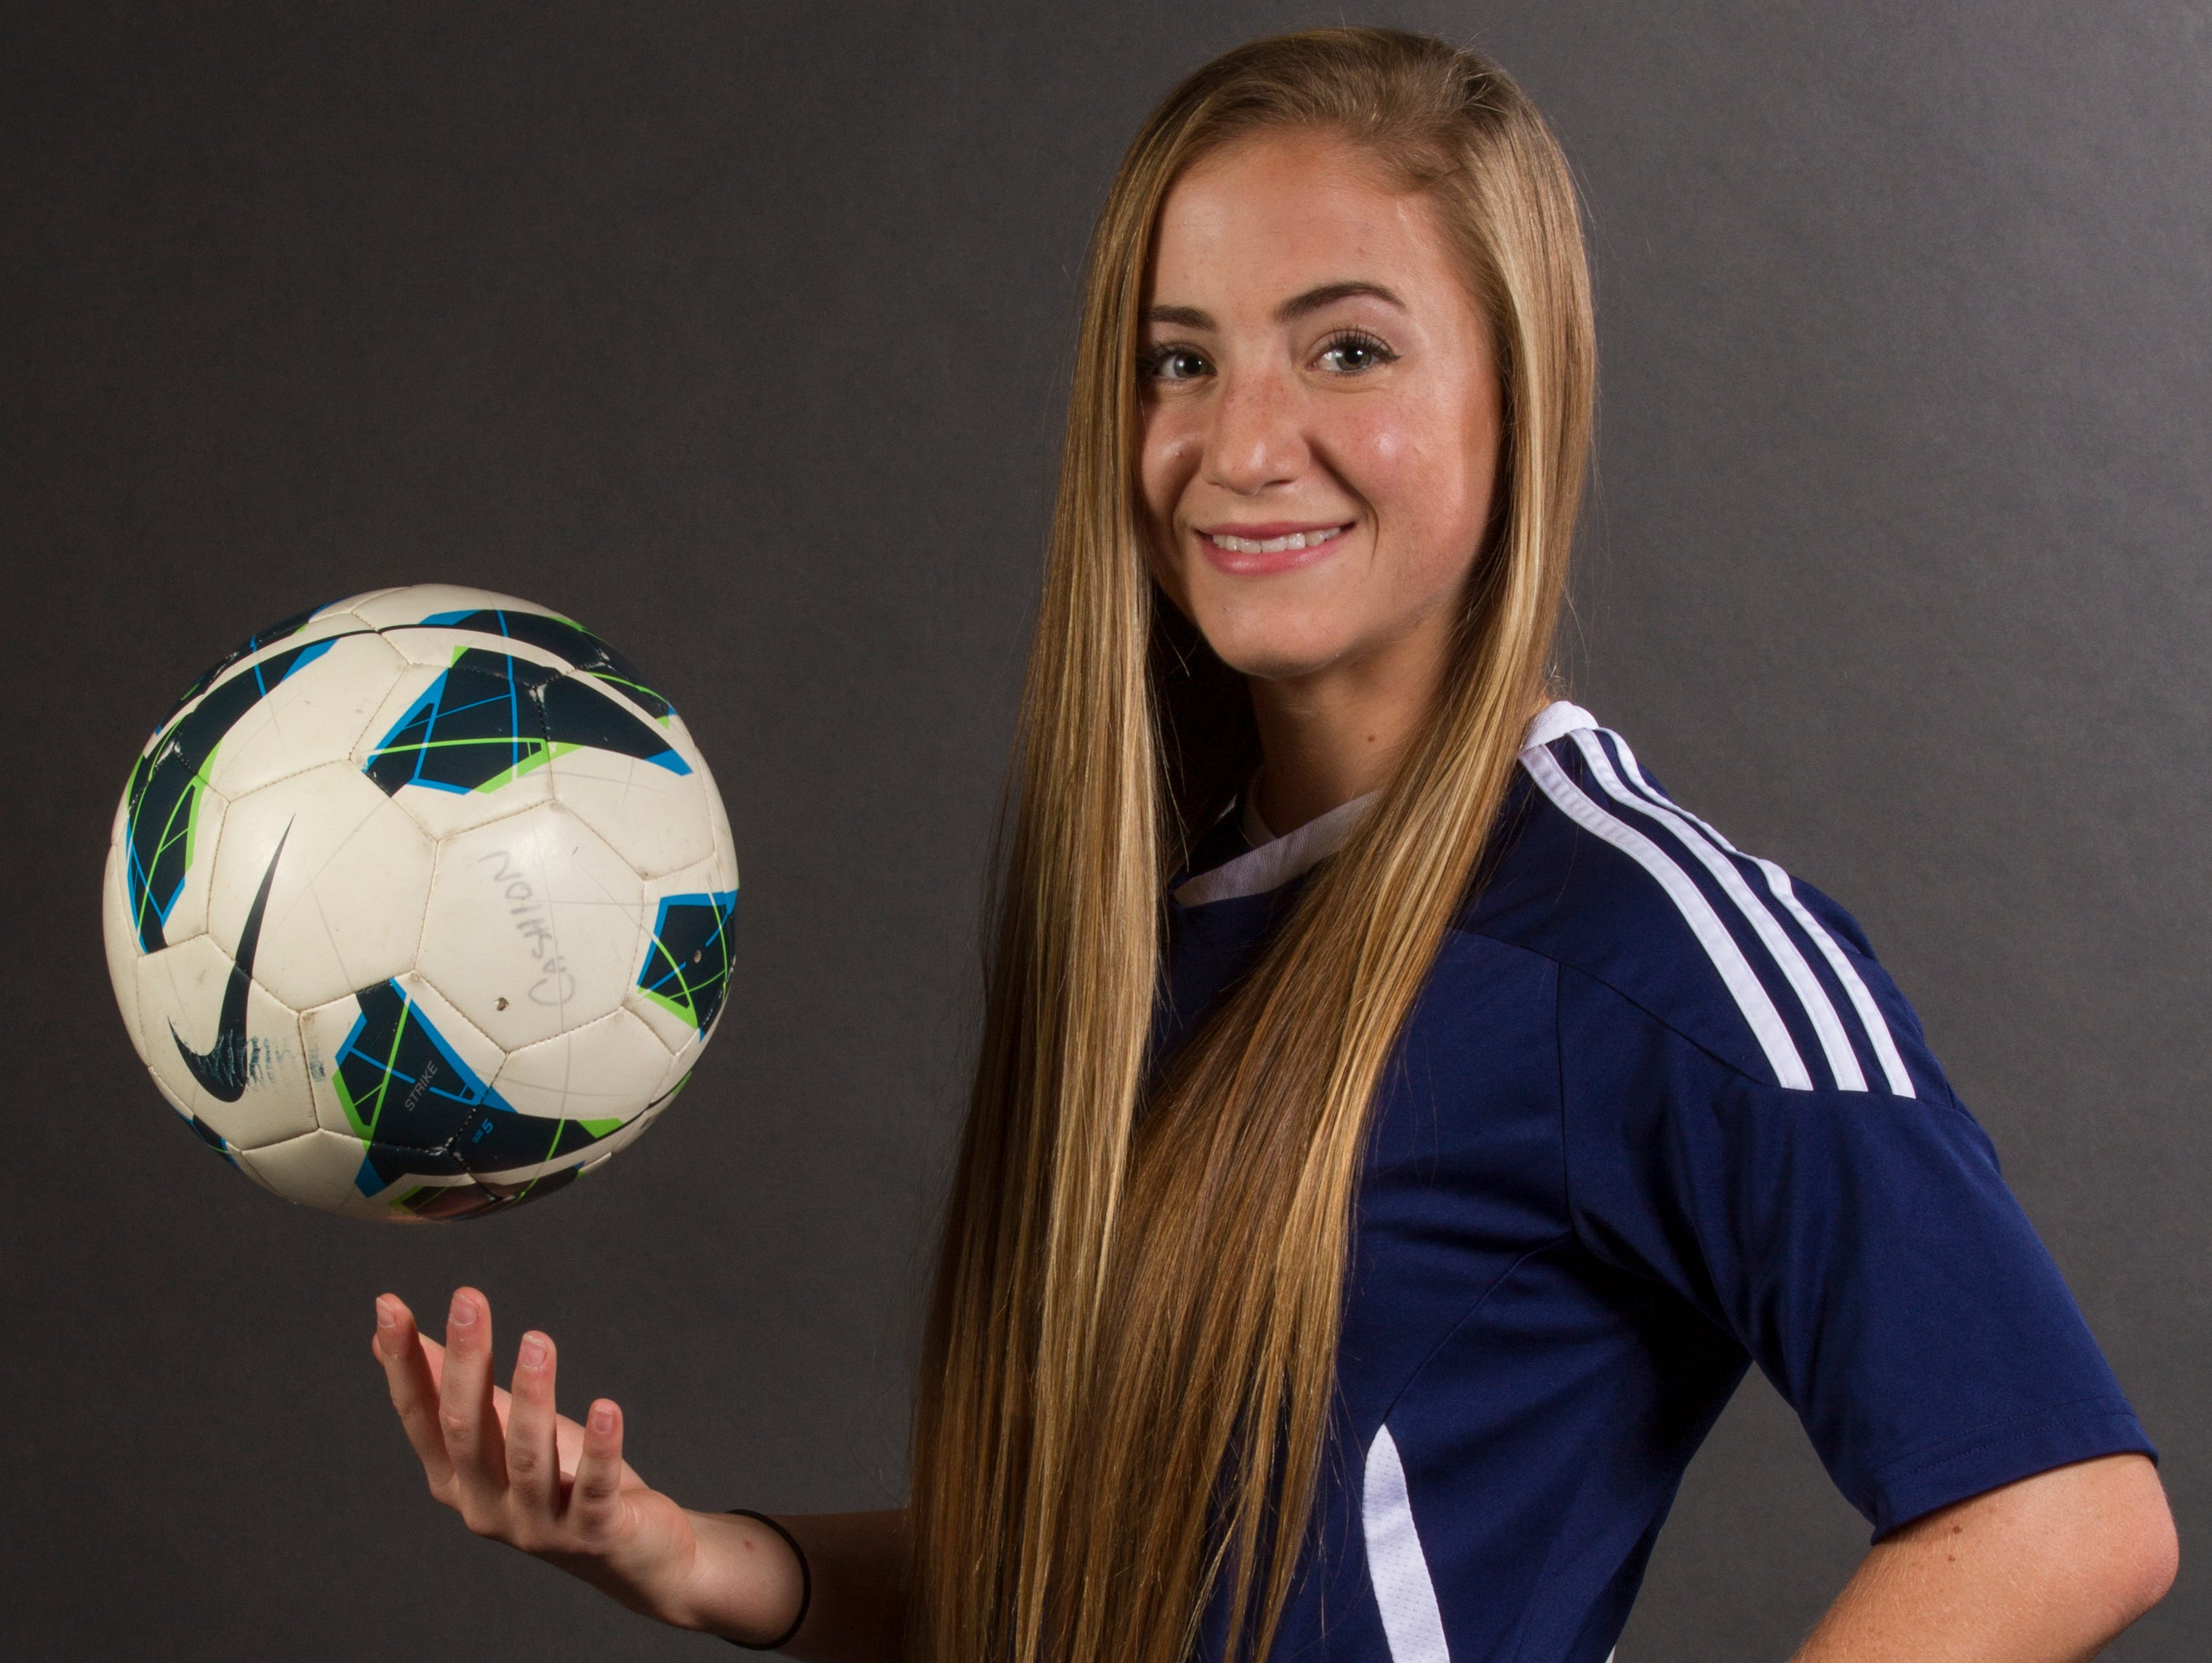 Taylor Hatch, 18, is a senior soccer player at Estero High School.